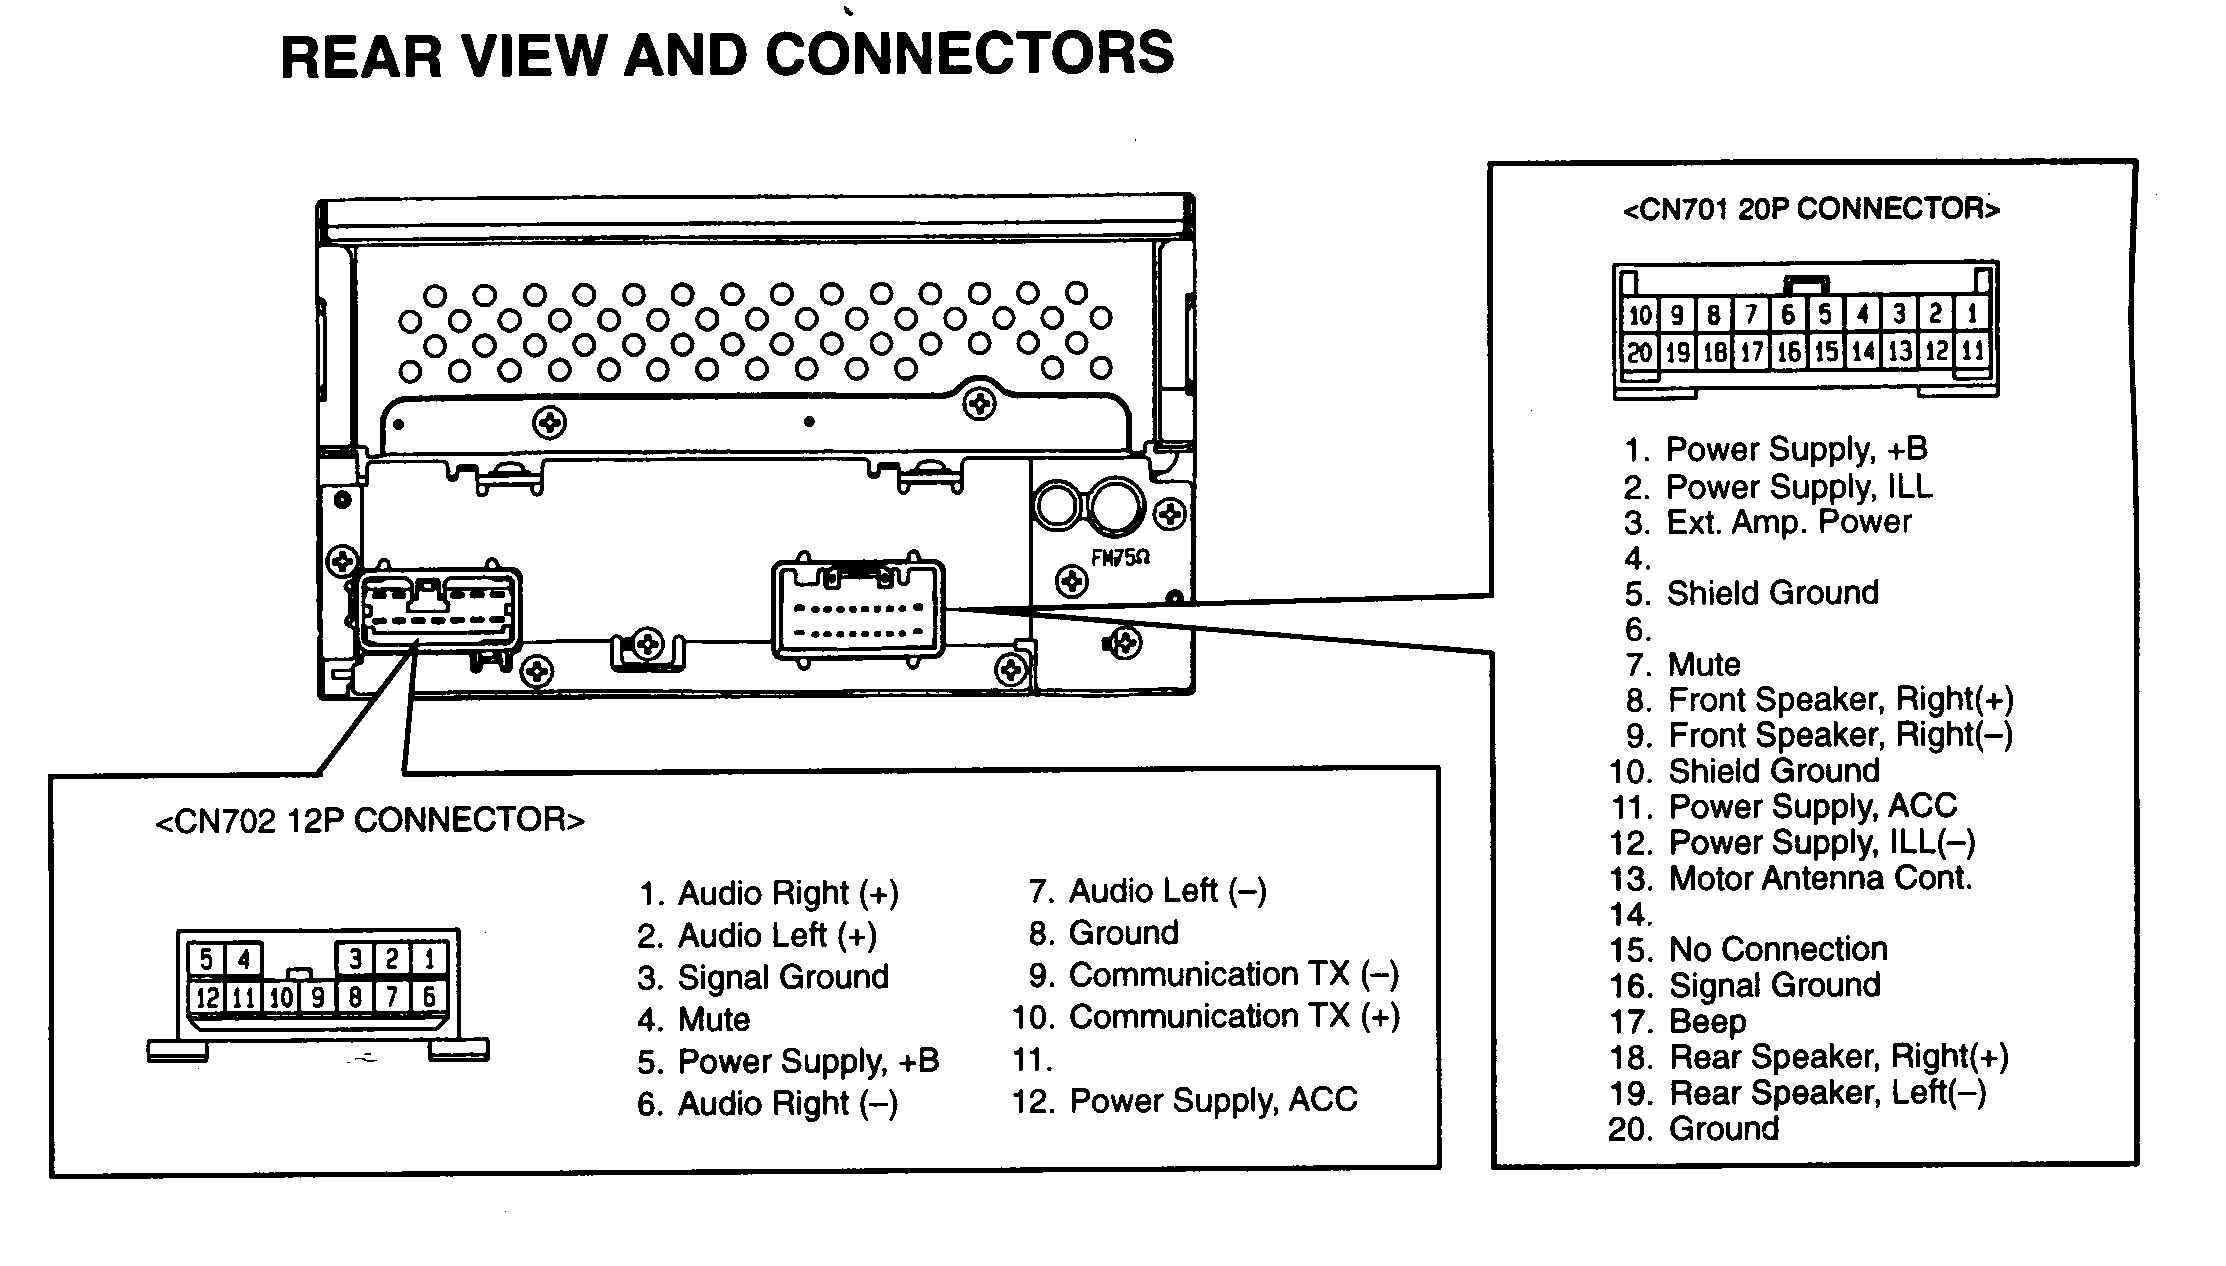 Car Stereo Speaker Wiring Diagram with Factory Car Stereo Wiring Diagrams Wiring Diagram Of Car Stereo Speaker Wiring Diagram